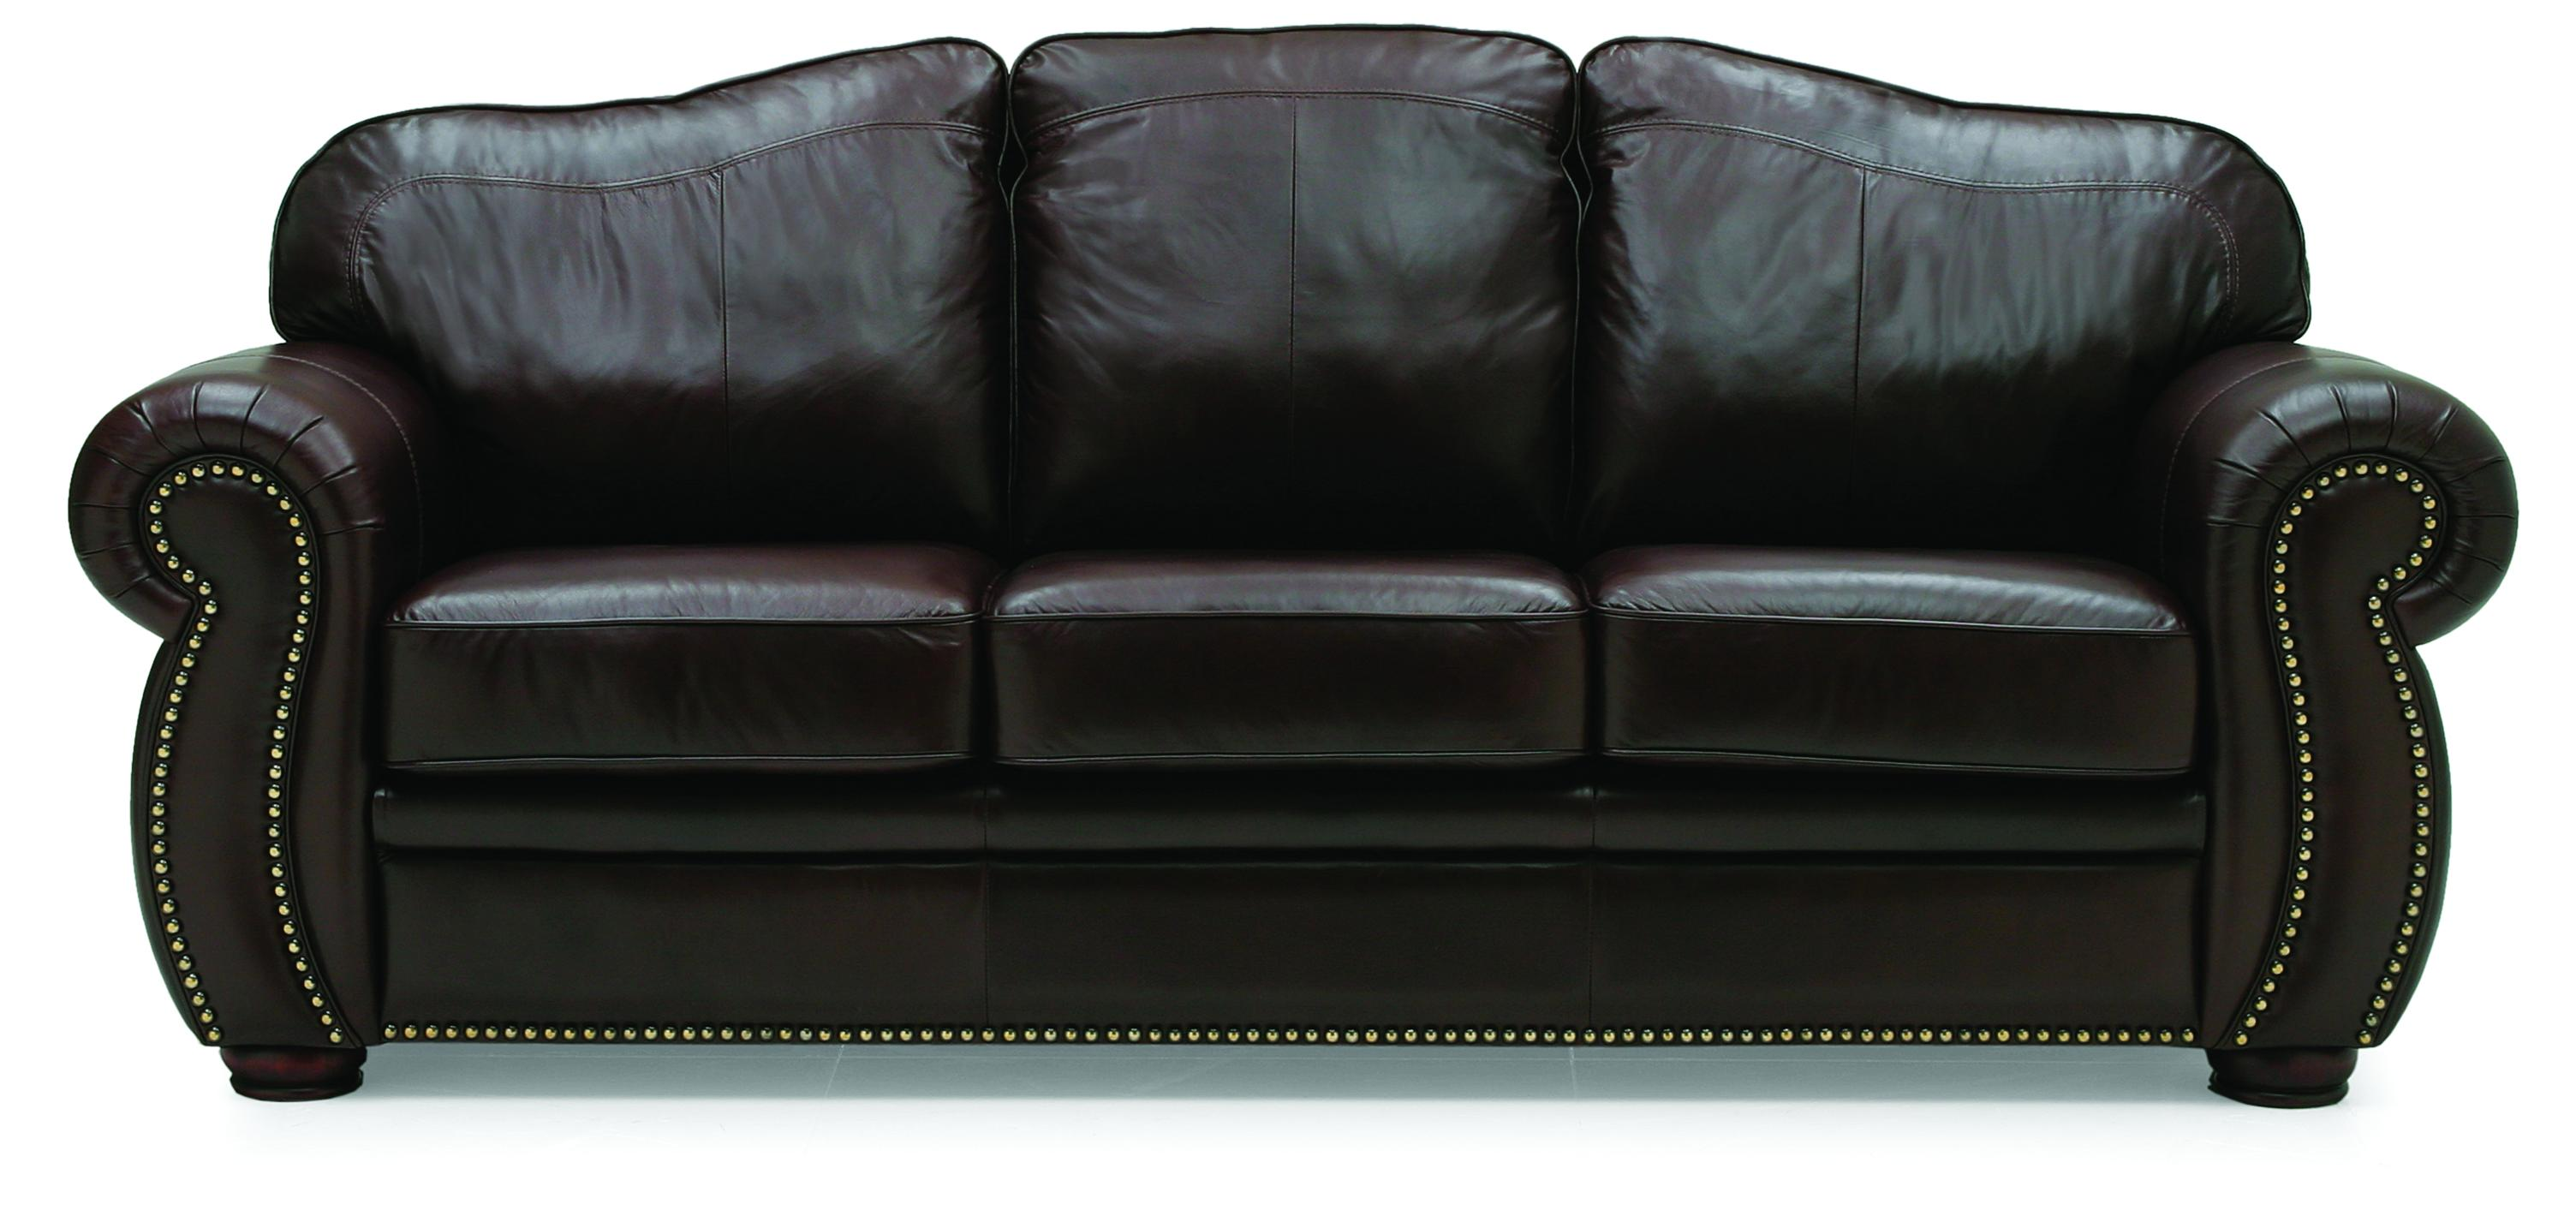 Leather Furniture For The More Contemporary Room